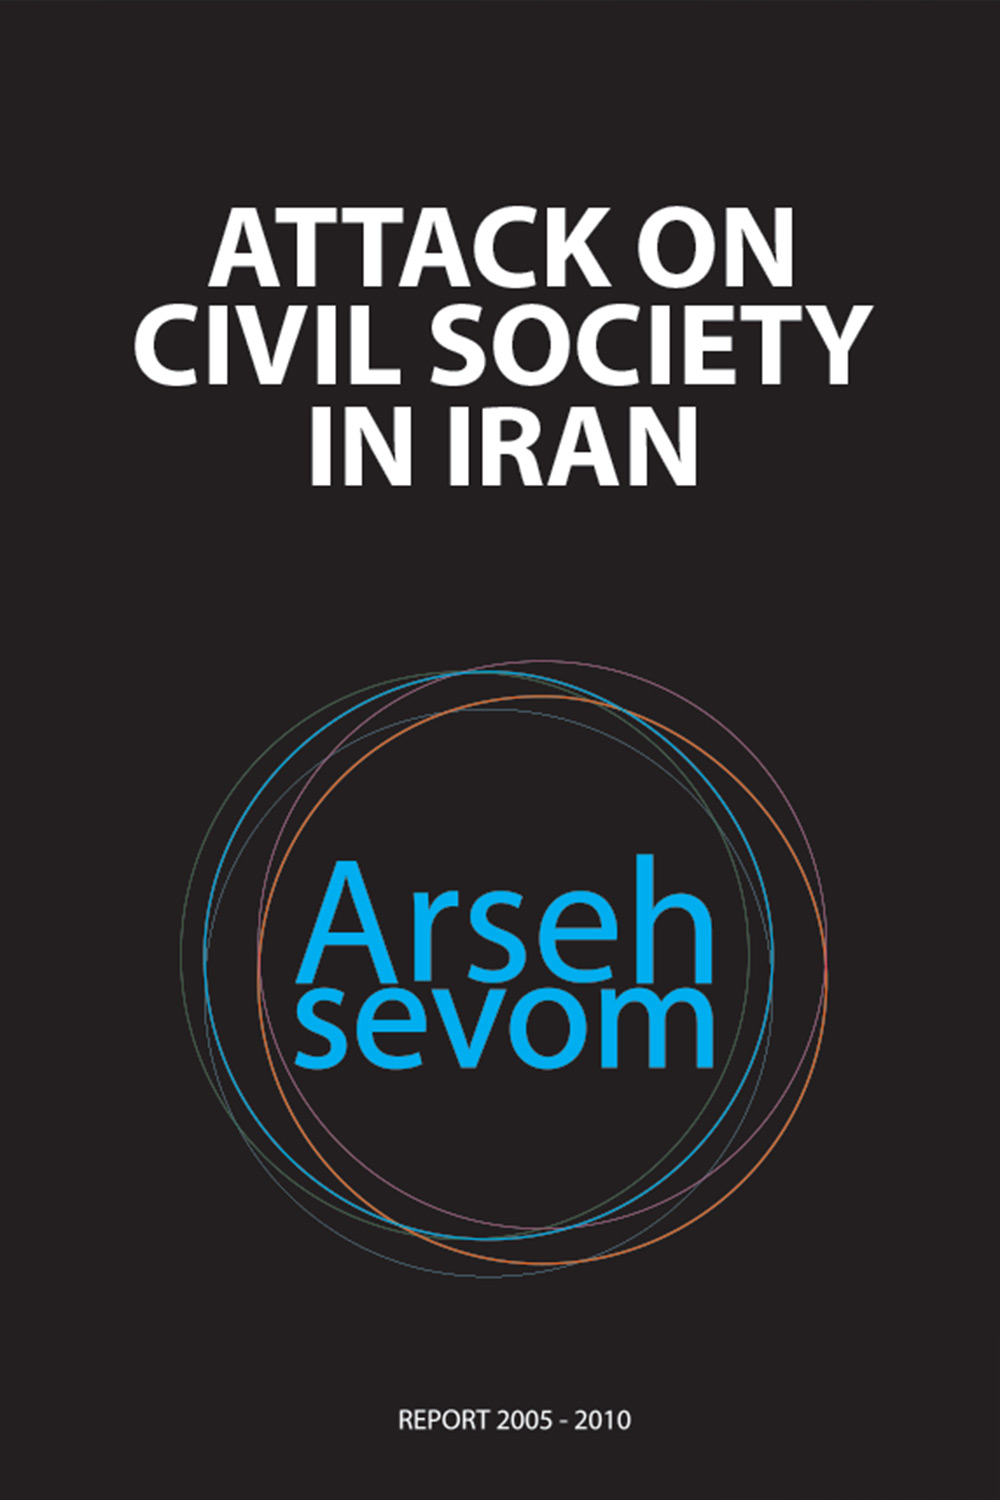 report-arseh-sevom_attacks-on-civil-society